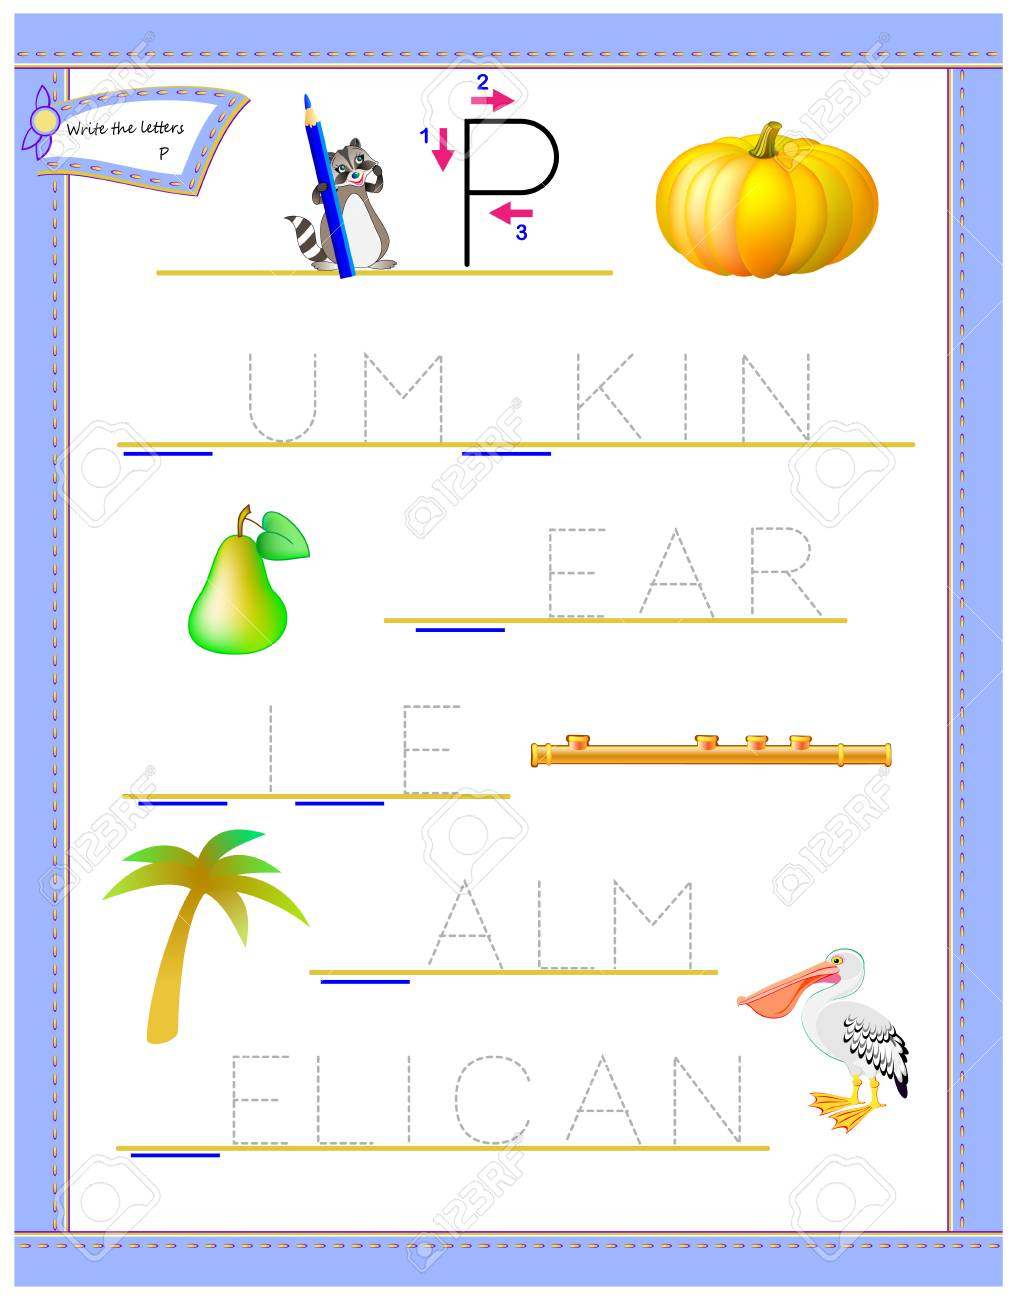 Tracing Letter P For Study English Alphabet. Printable Worksheet - Letter P Puzzle Printable